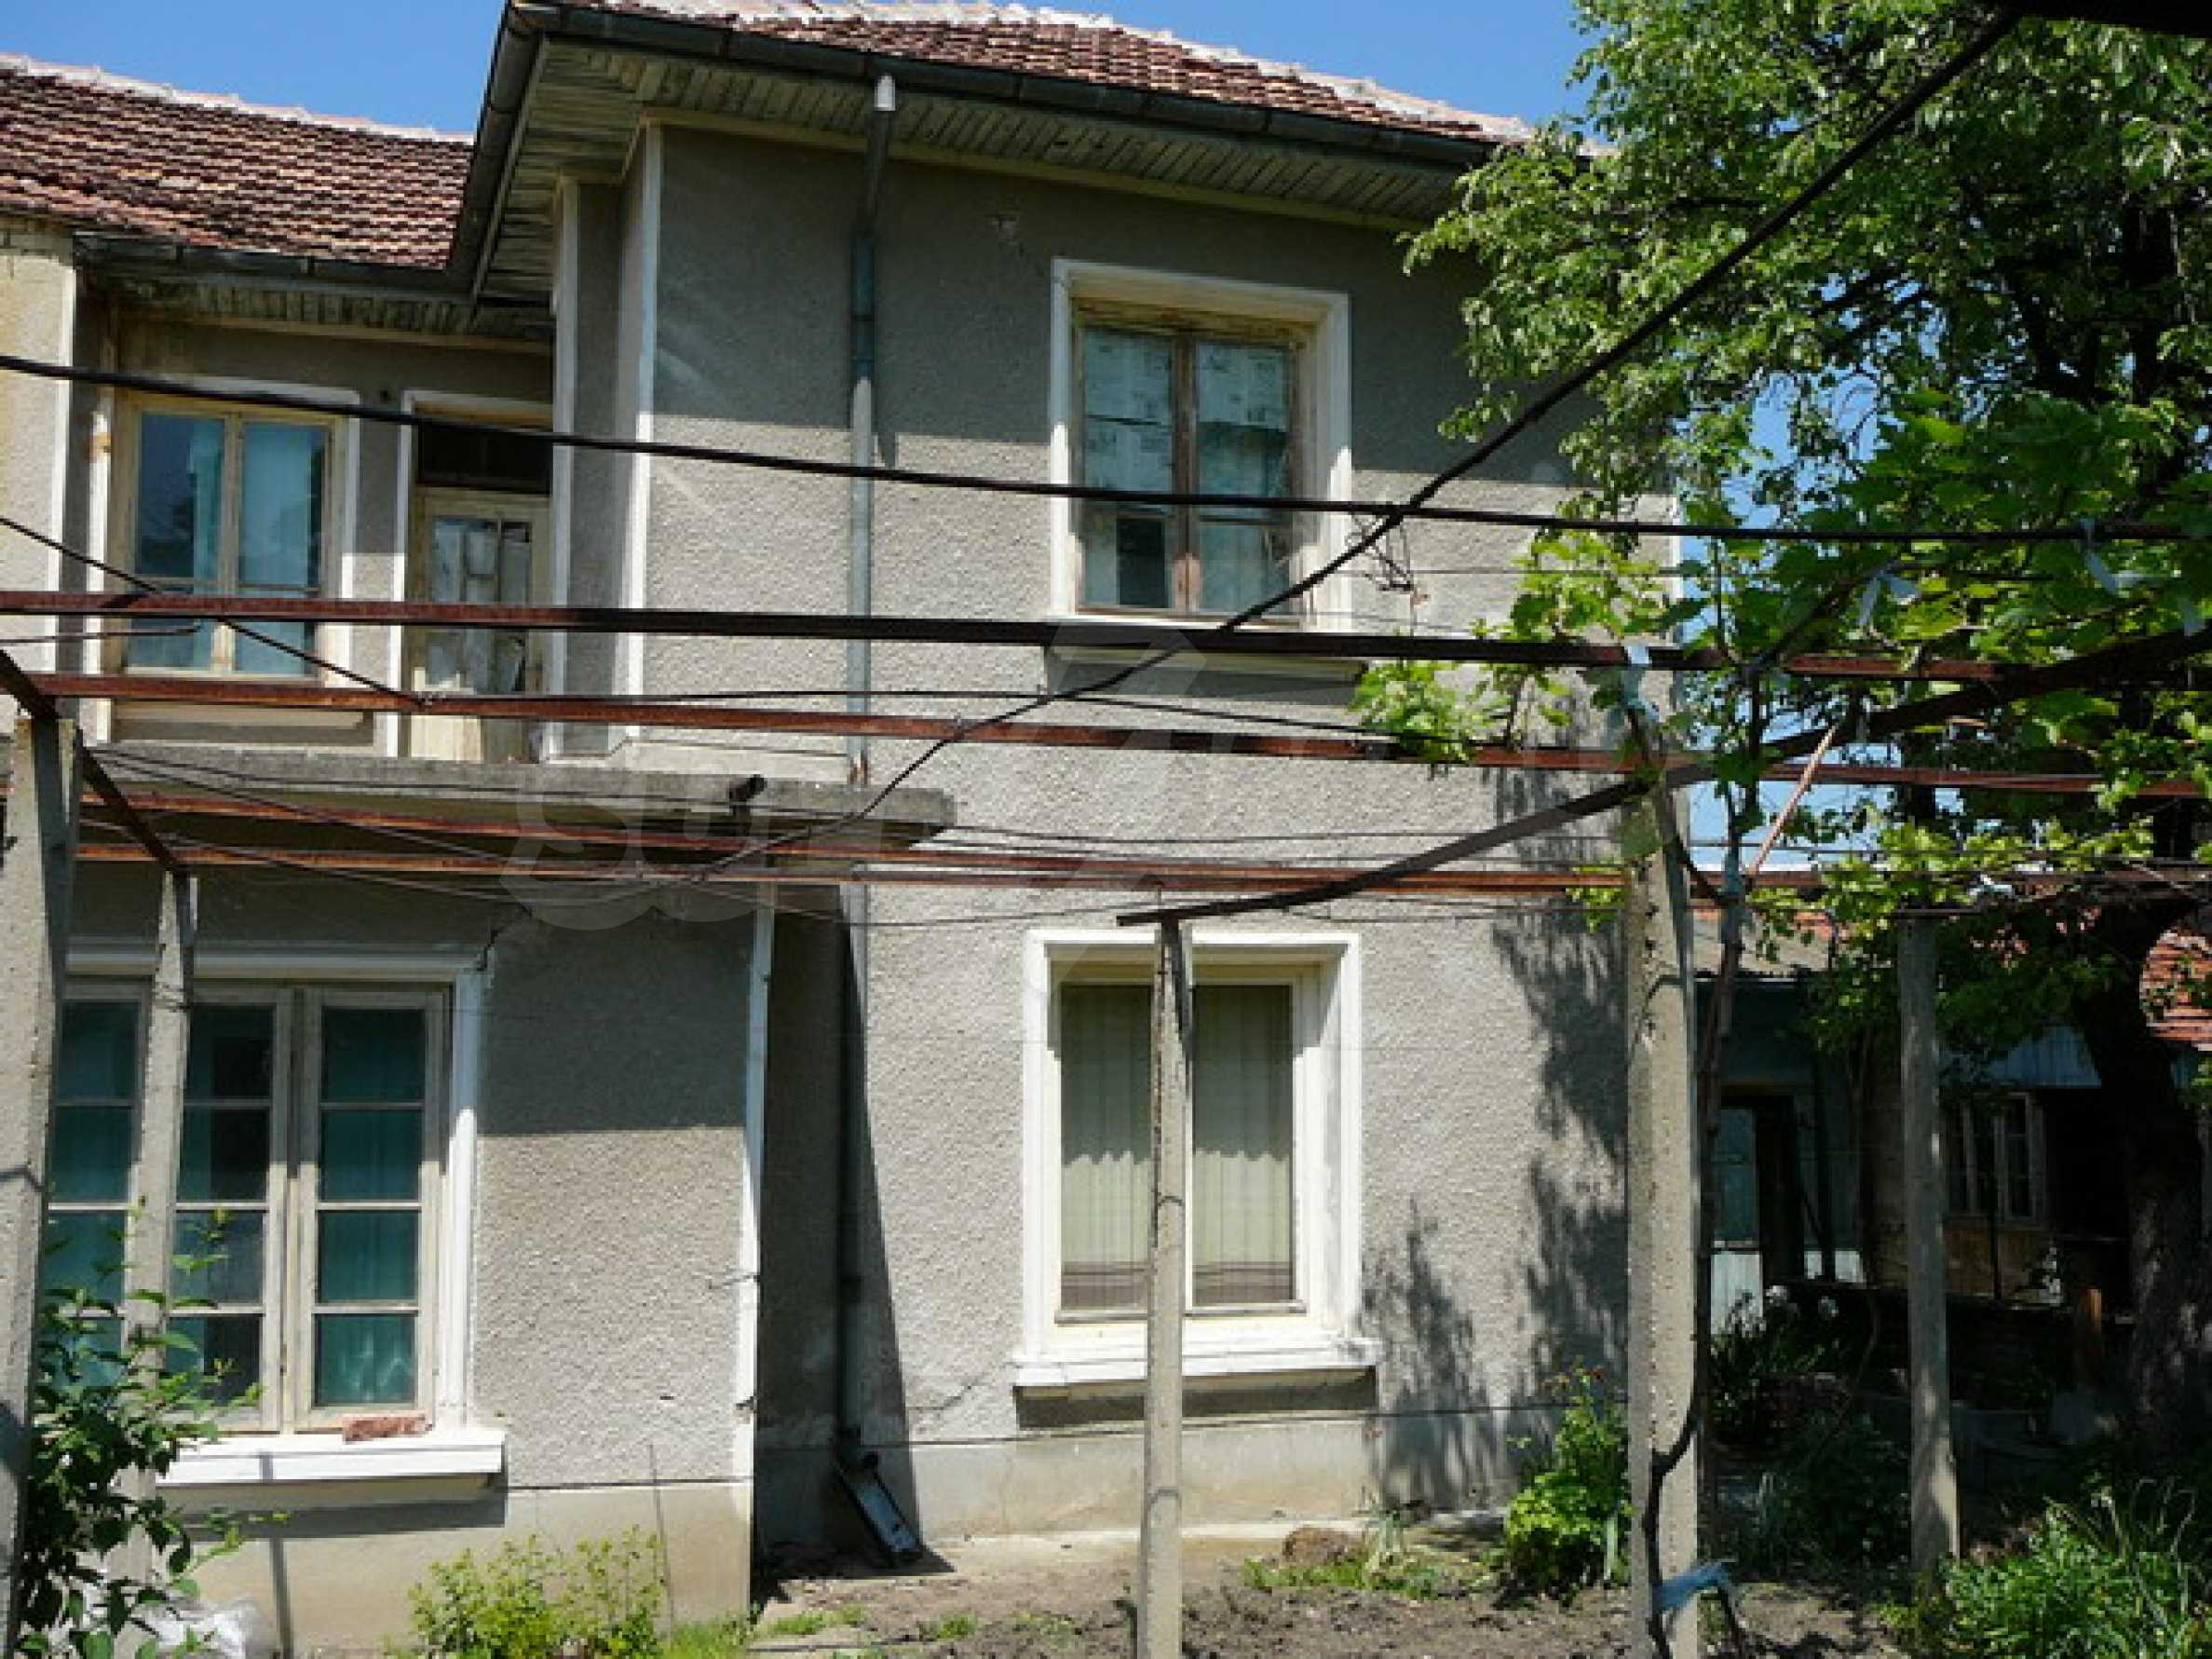 House for sale in a village close to Veliko Tarnovo 16